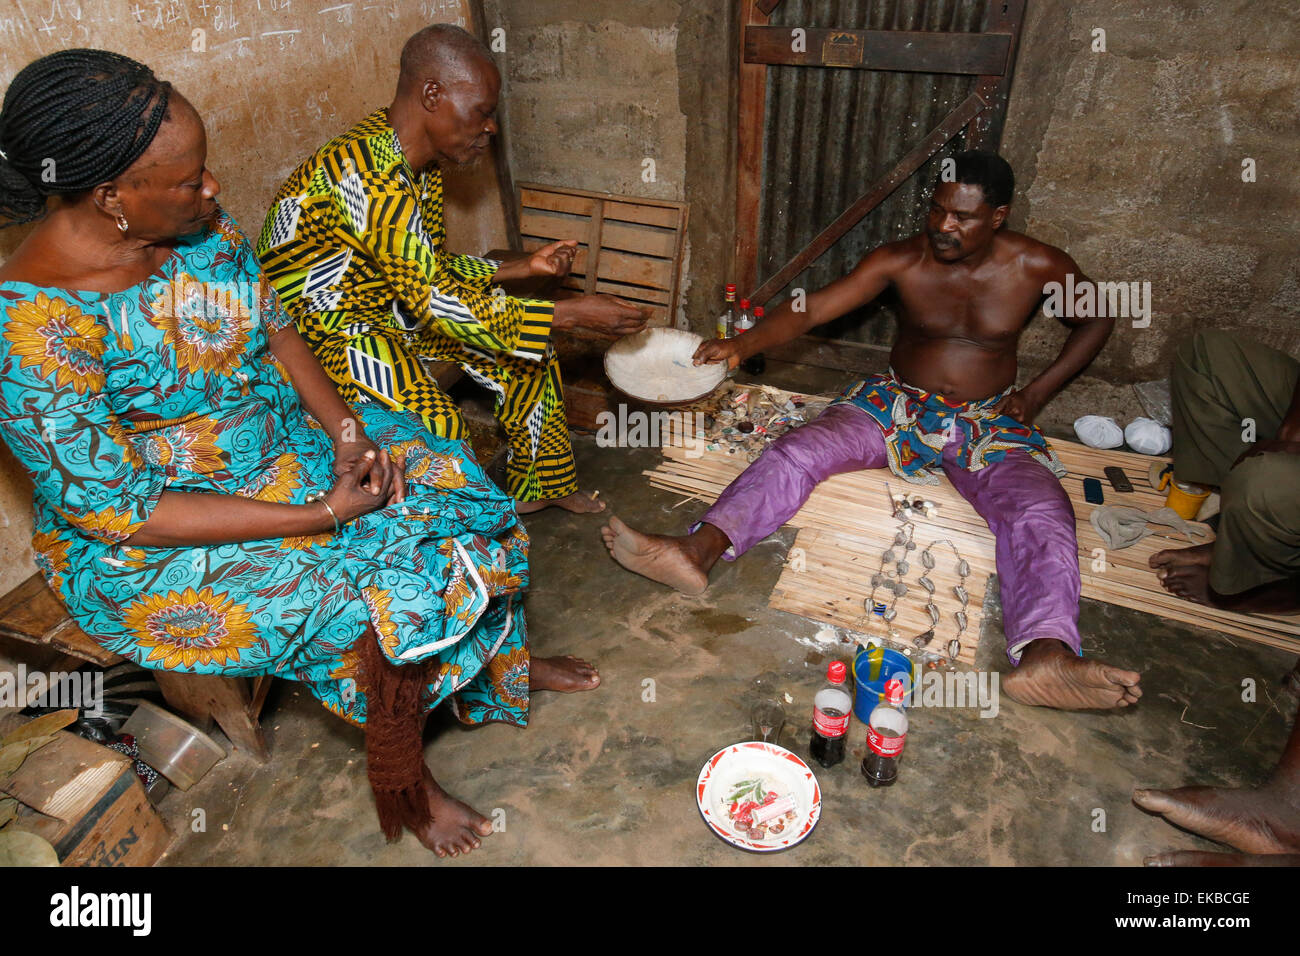 Couple visiting a fortune teller in Ouidah, Benin, West Africa, Africa - Stock Image